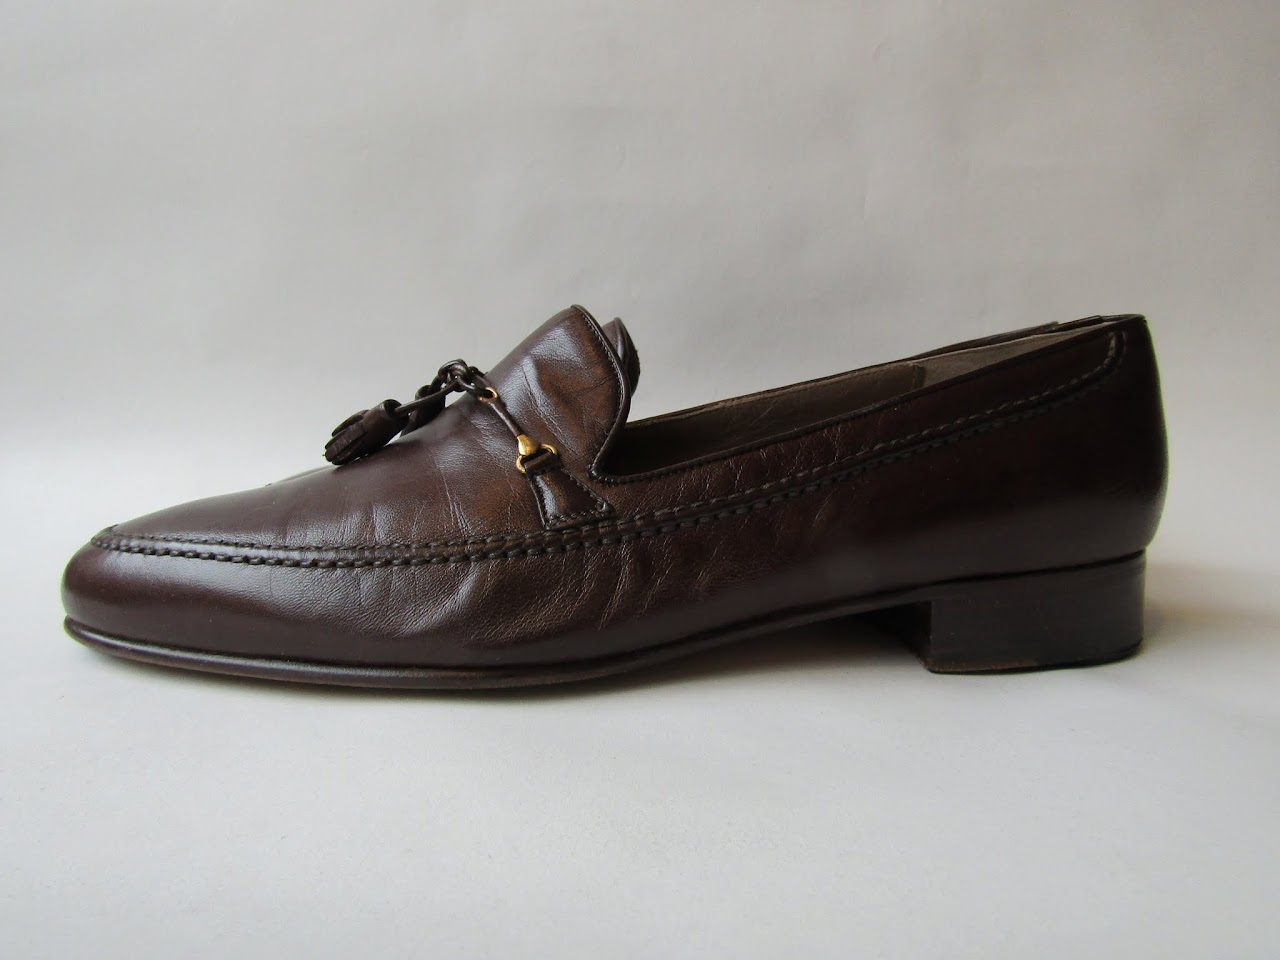 Vintage Bally Chocolate Brown Tassel Loafers